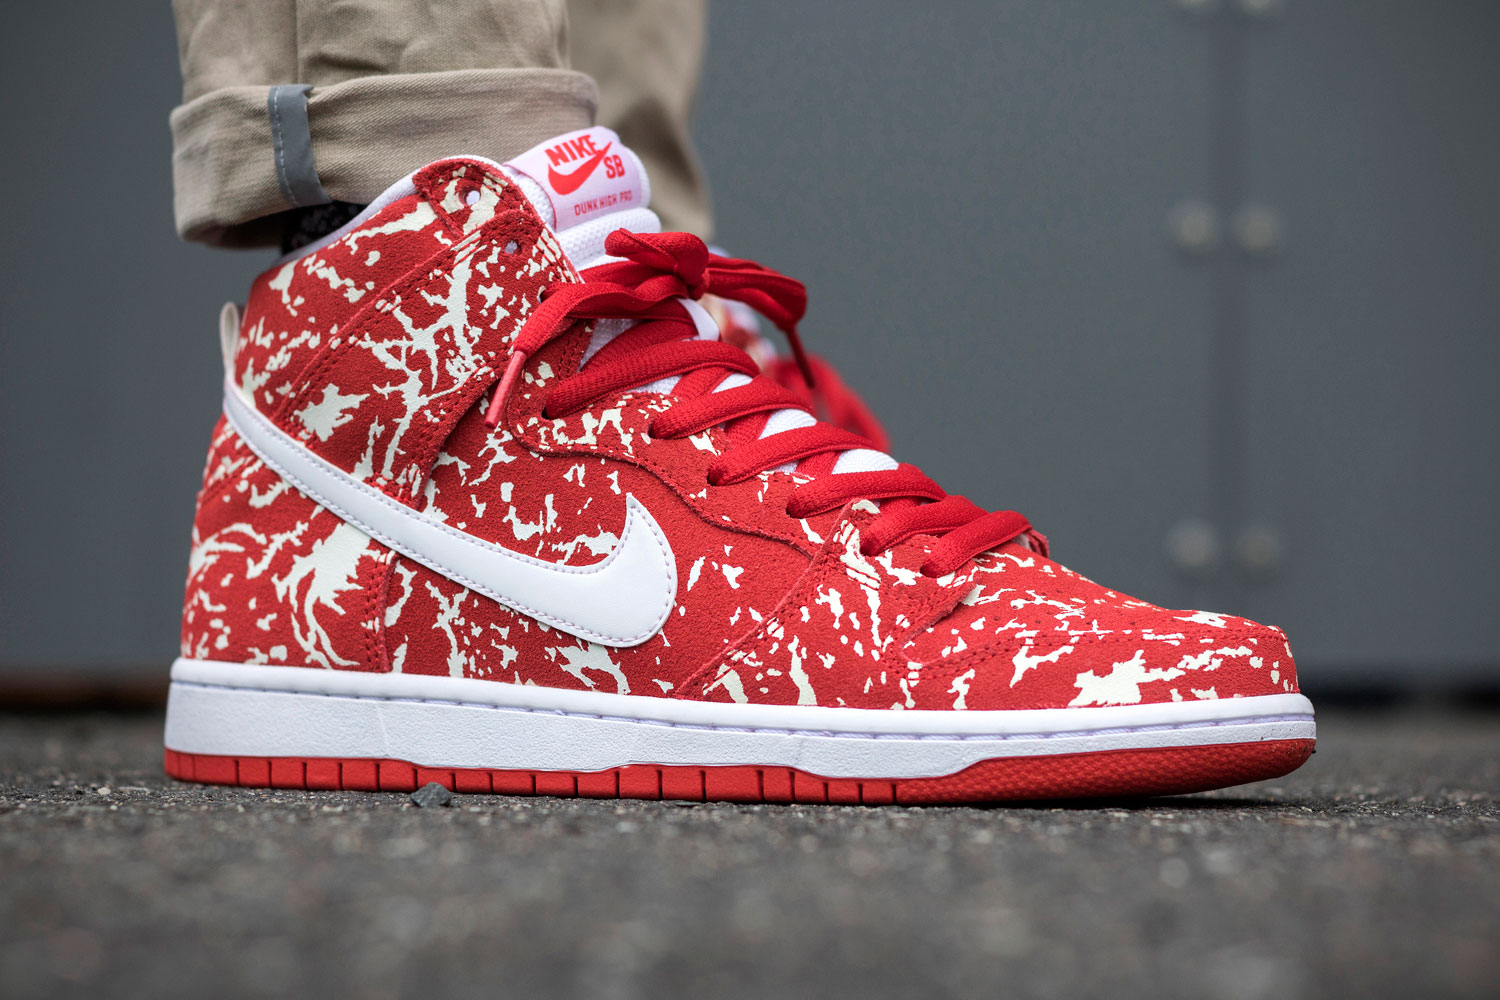 Nike Dunk High Pro SB Kobe 'Raw Meat' (Challenge Red)